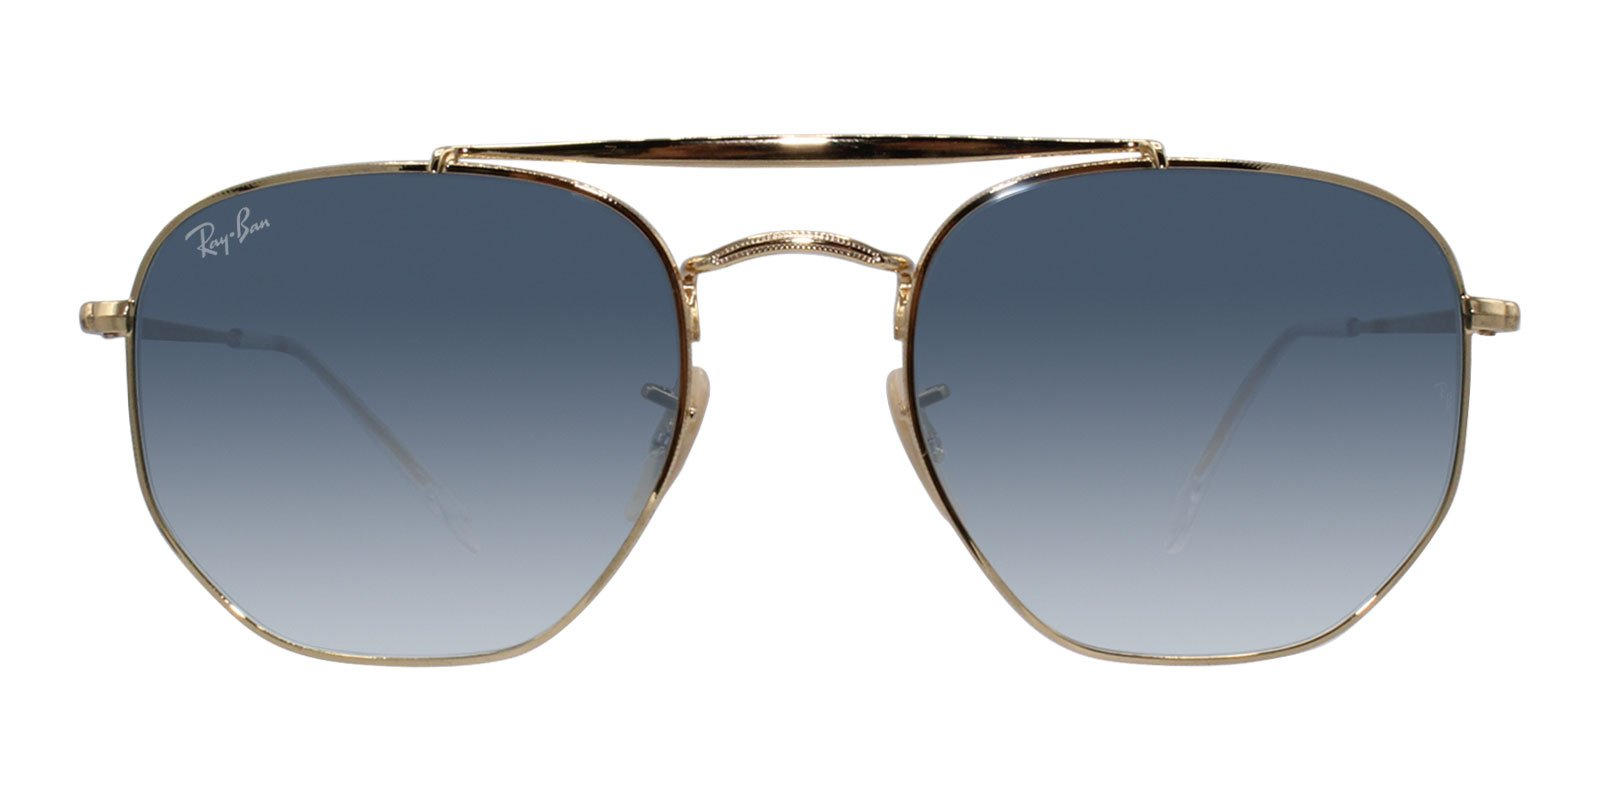 Ray Ban - RB3648 Gold Oval Unisex Sunglasses - 54mm-Sunglasses-Designer Eyes